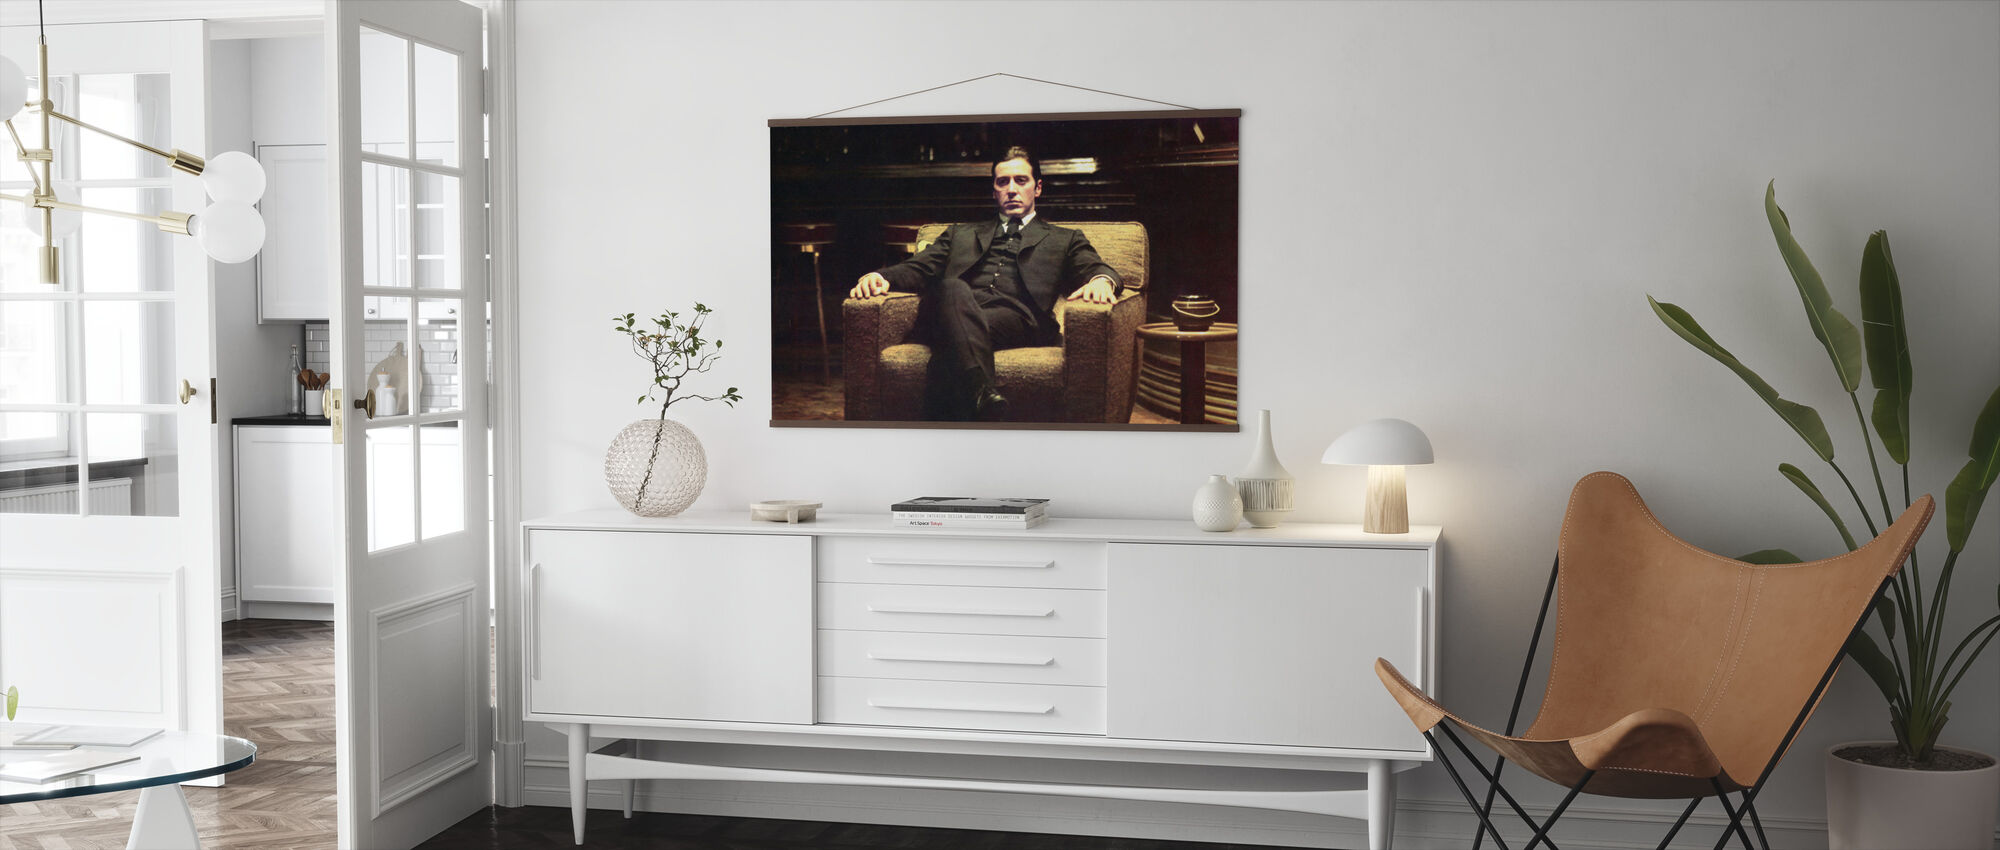 The Godfather - Leaned Back Michael Corleone - Poster - Living Room